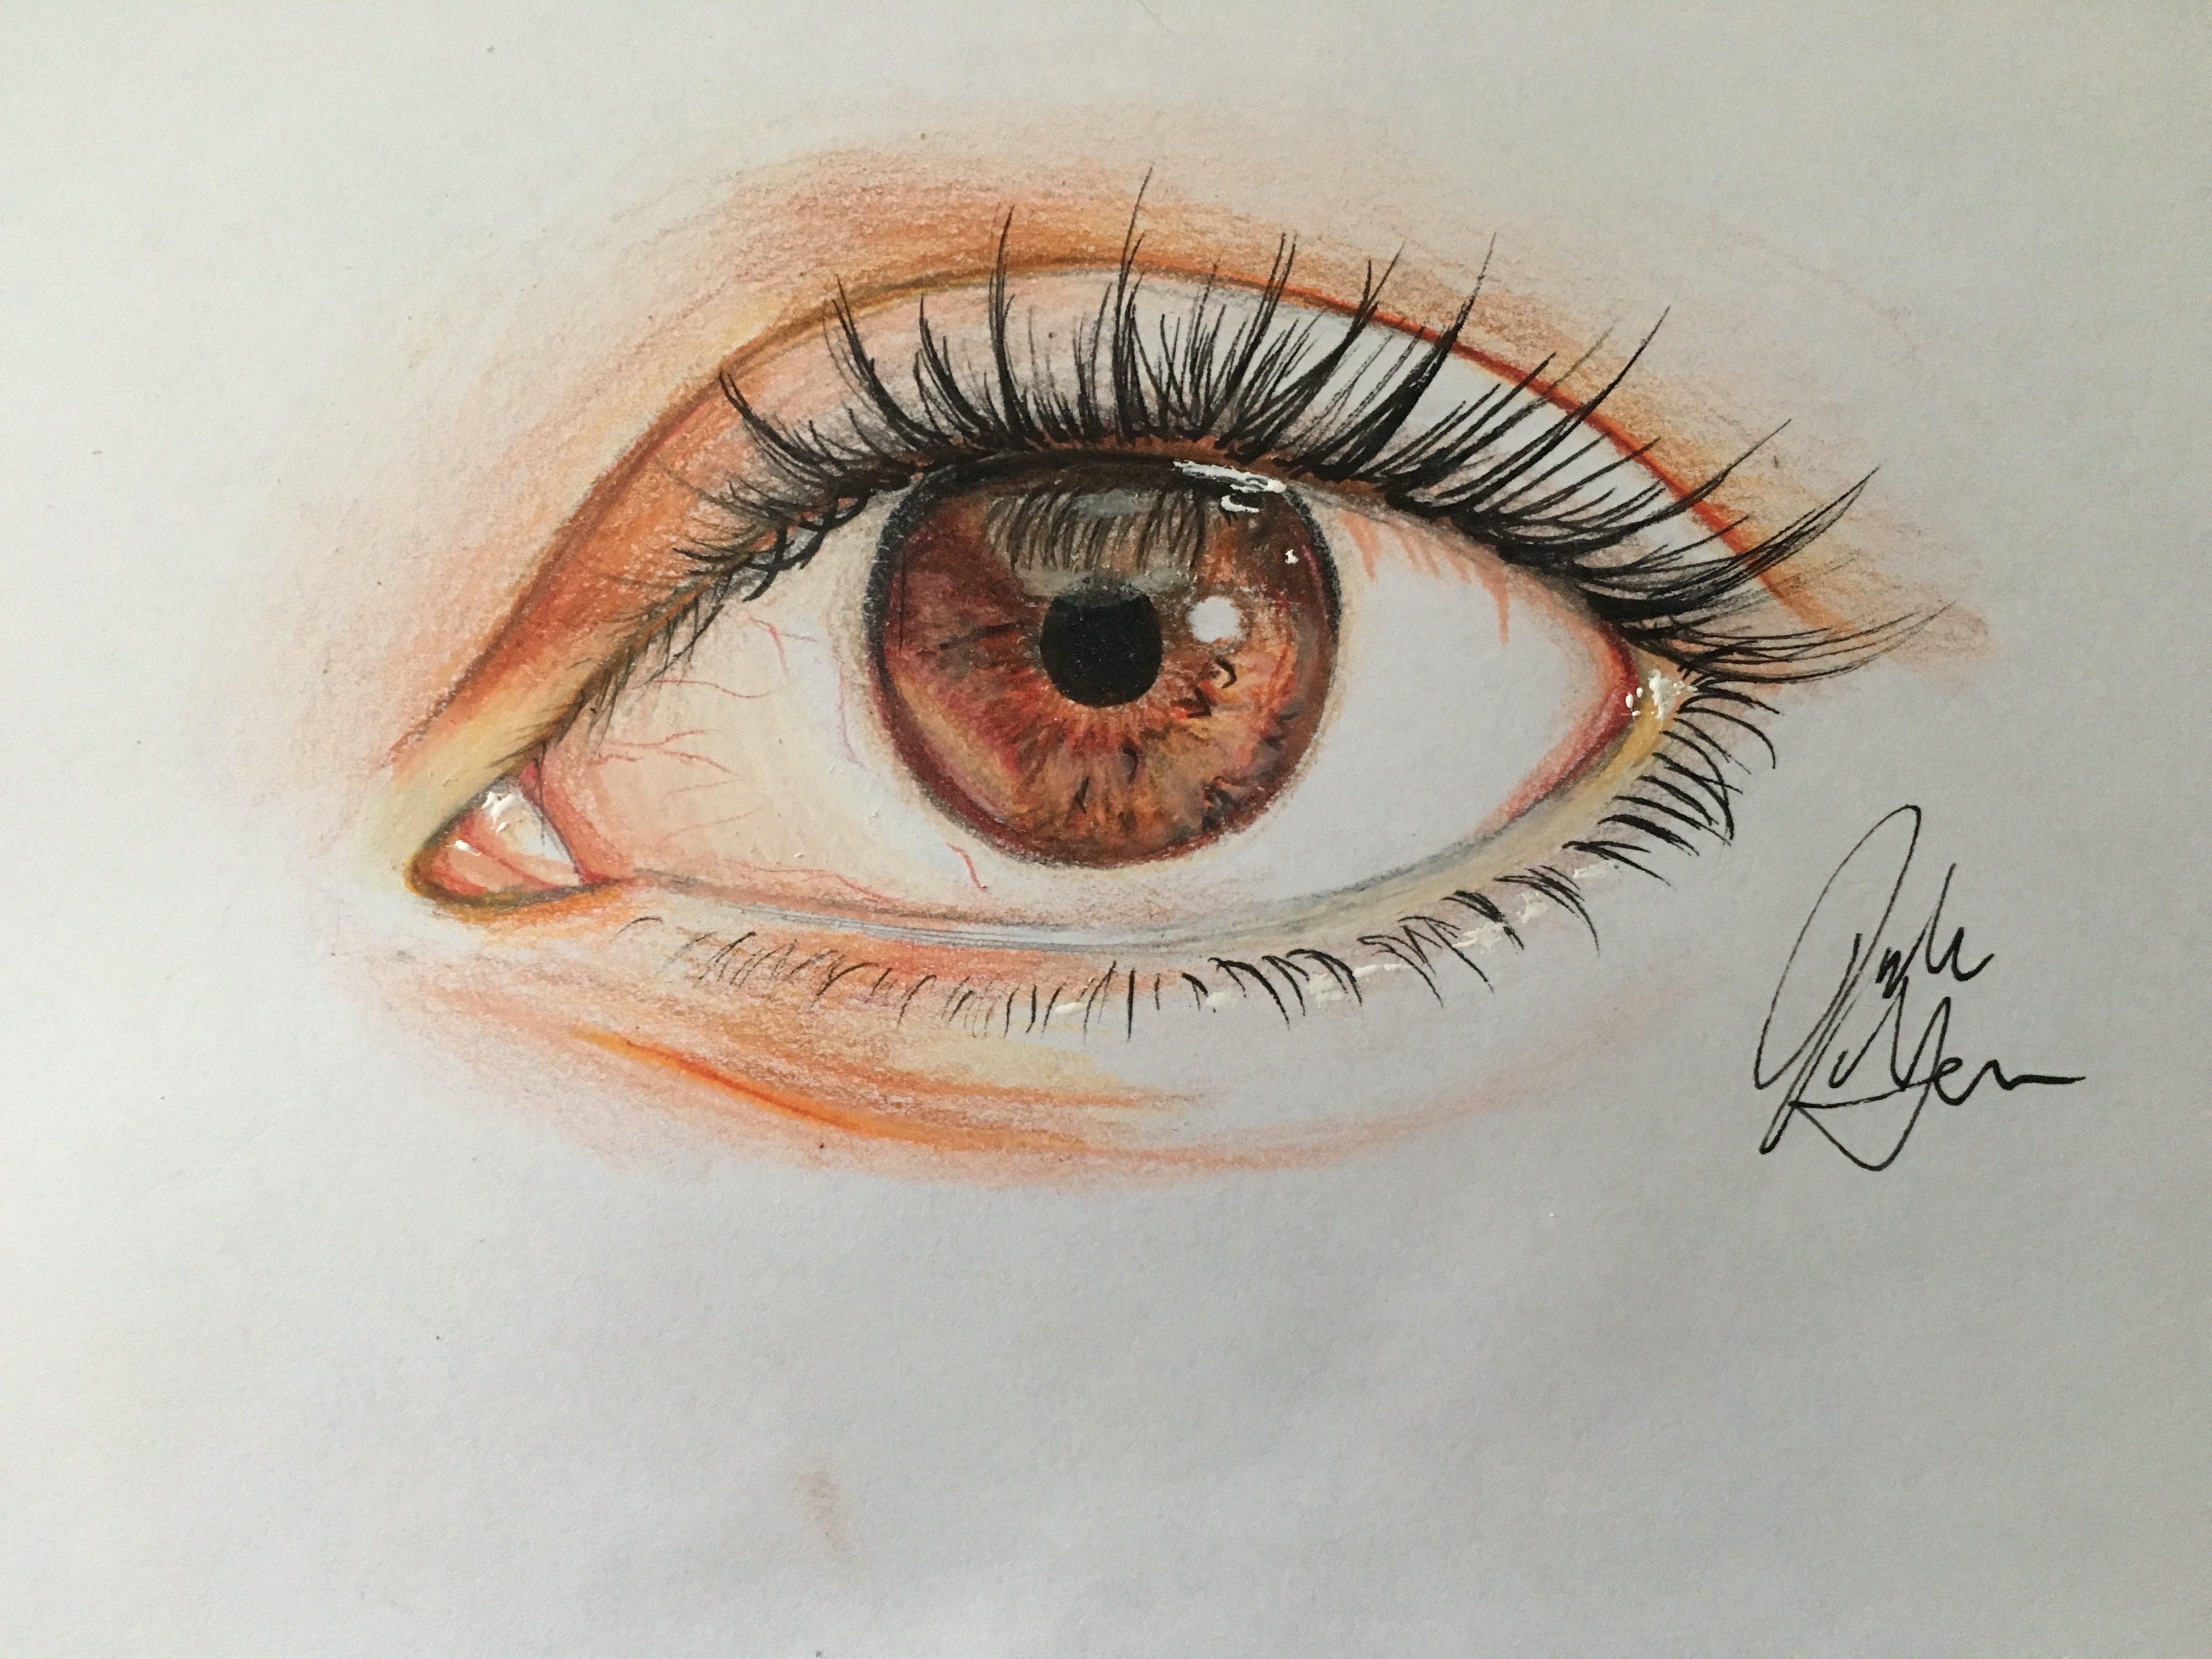 4032x3024 How To Draw An Eye In Colored Pencil (With Pictures)